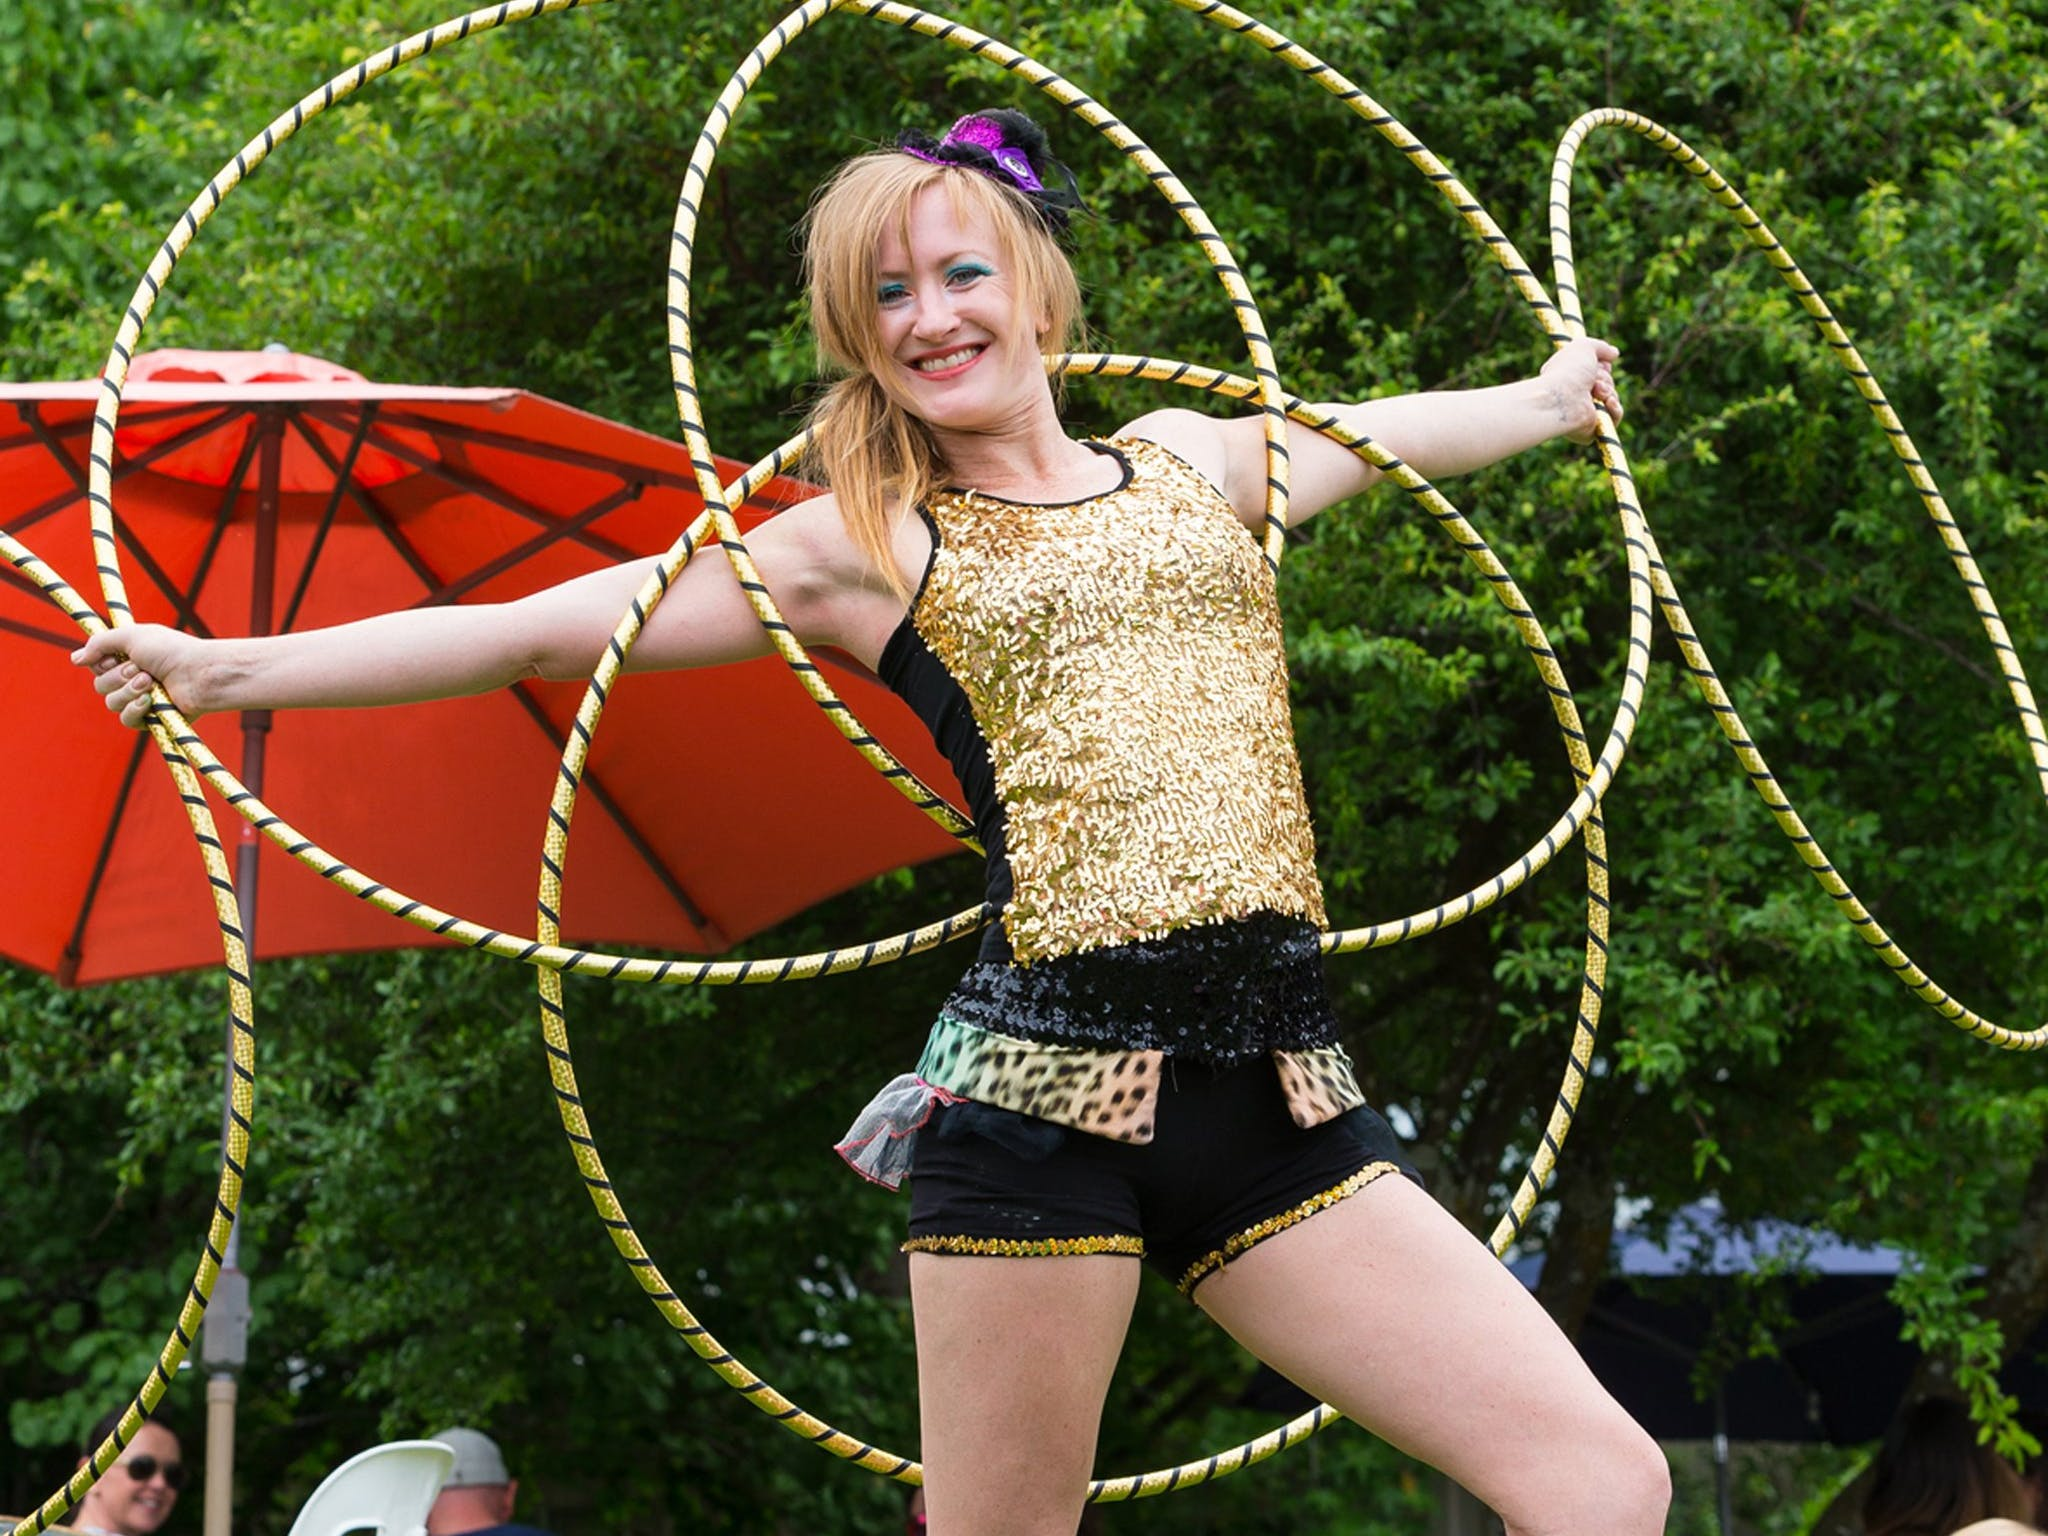 Gnocchi Carnevale, circus perforers with hoops